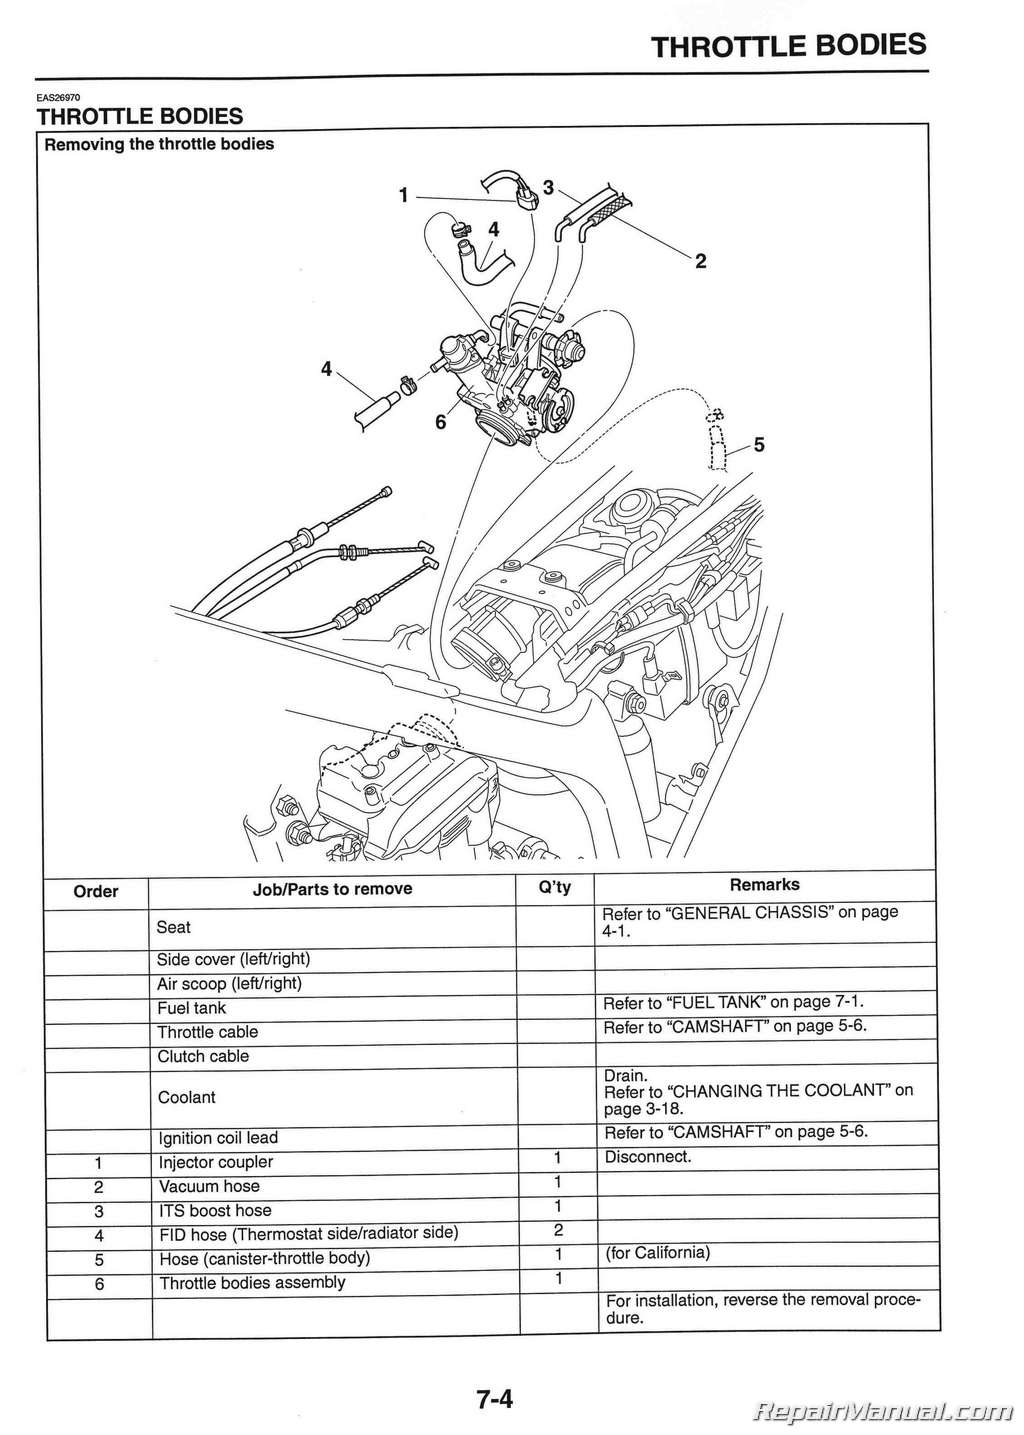 all repair manual rh repairmanualtah blogspot com Yamaha Banshee Wiring-Diagram Yamaha ATV Wiring Diagram